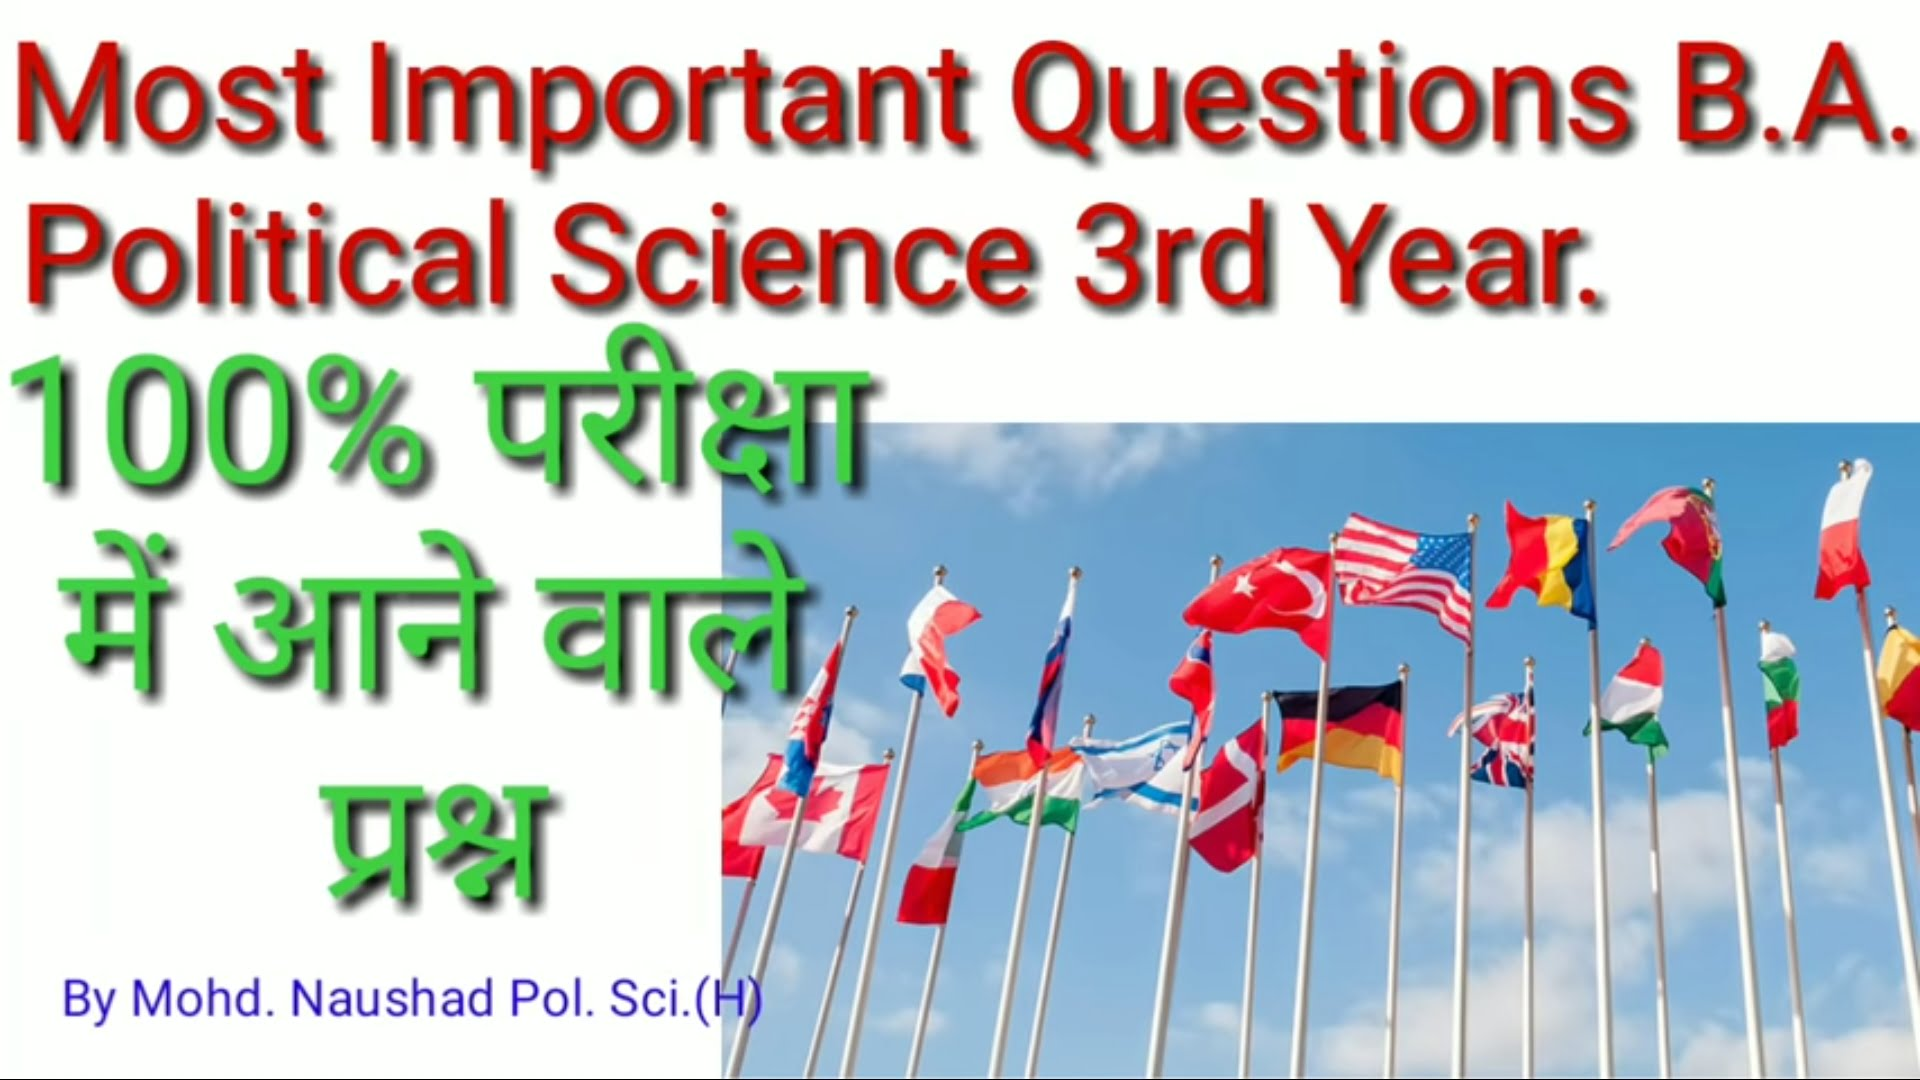 3rd Year B.A. Political Science Important Questions for Exams 2019